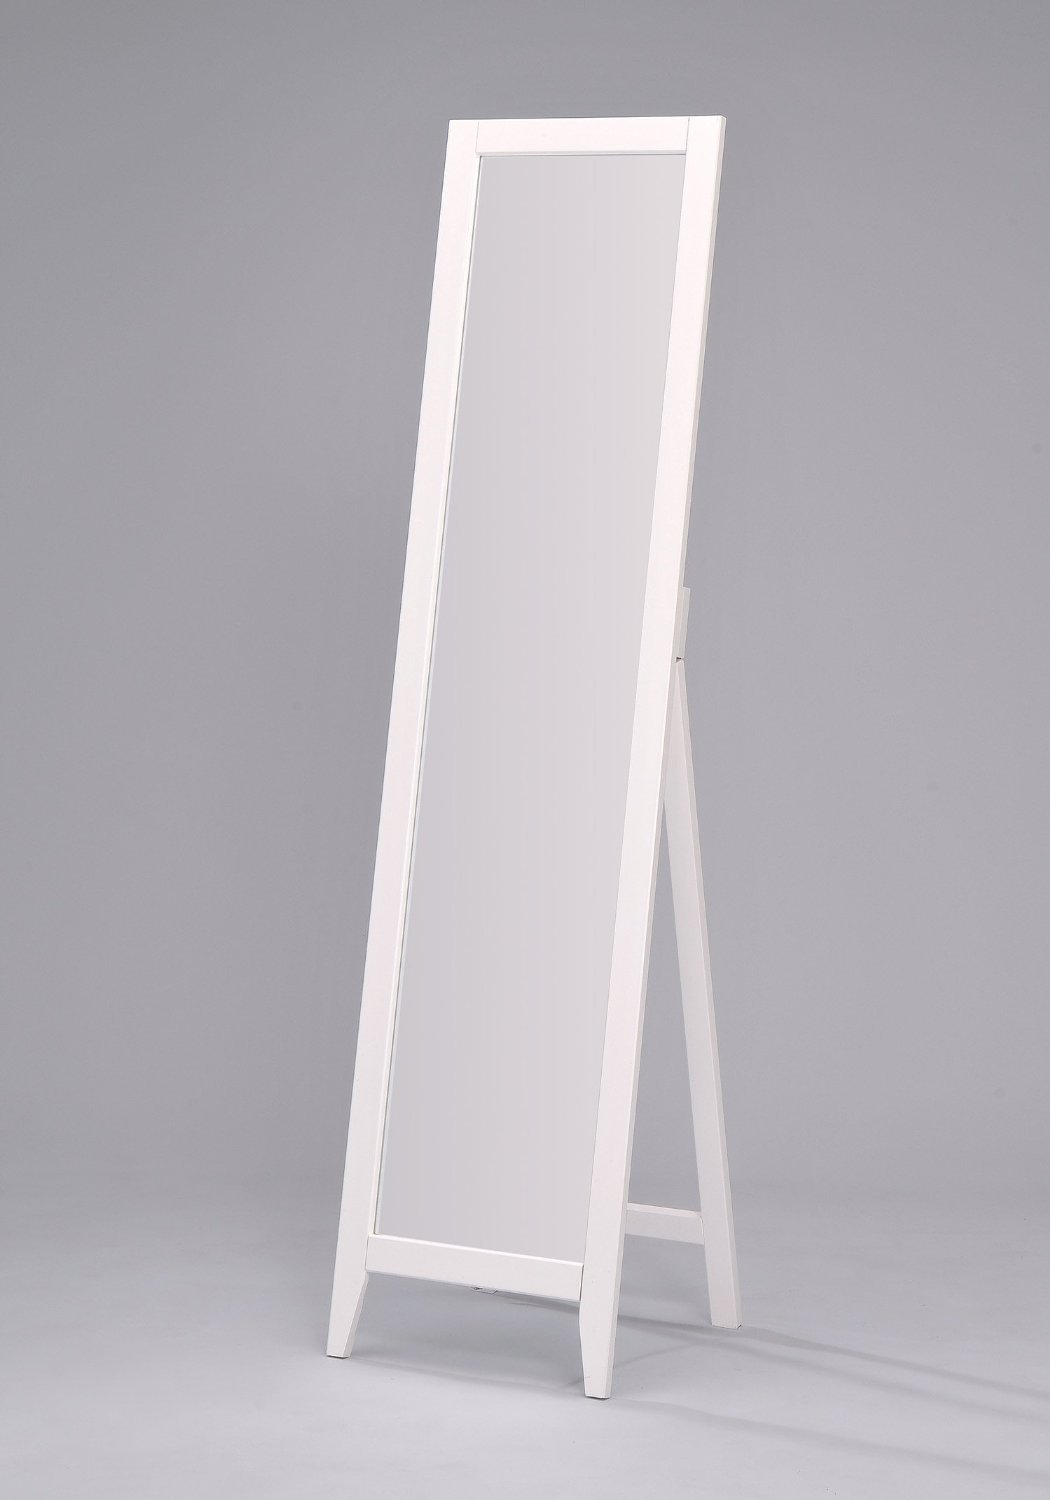 Shop amazon floor mirrors solid wood frame standing floor mirror white finish jeuxipadfo Choice Image